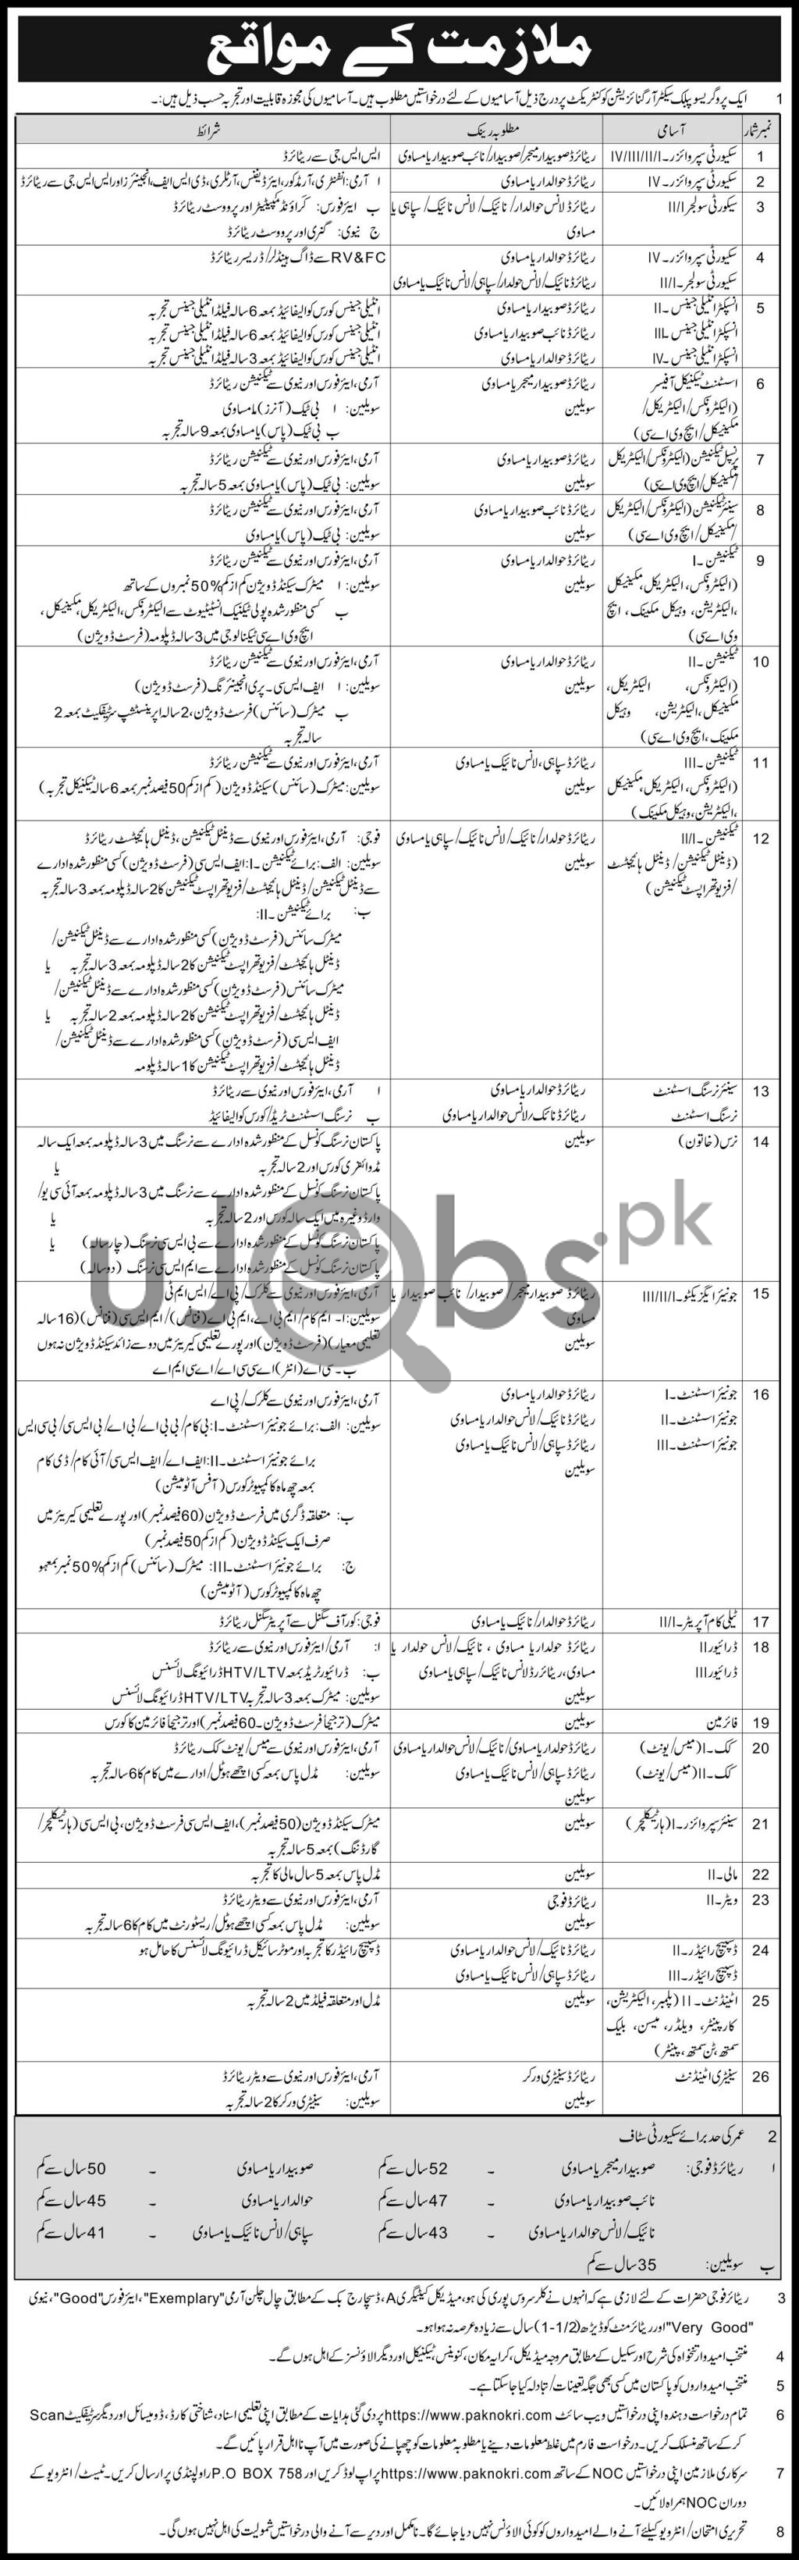 Latest Rawalpindi Jobs Opportunities 2021 in Public Sector Organization on Contract Basis